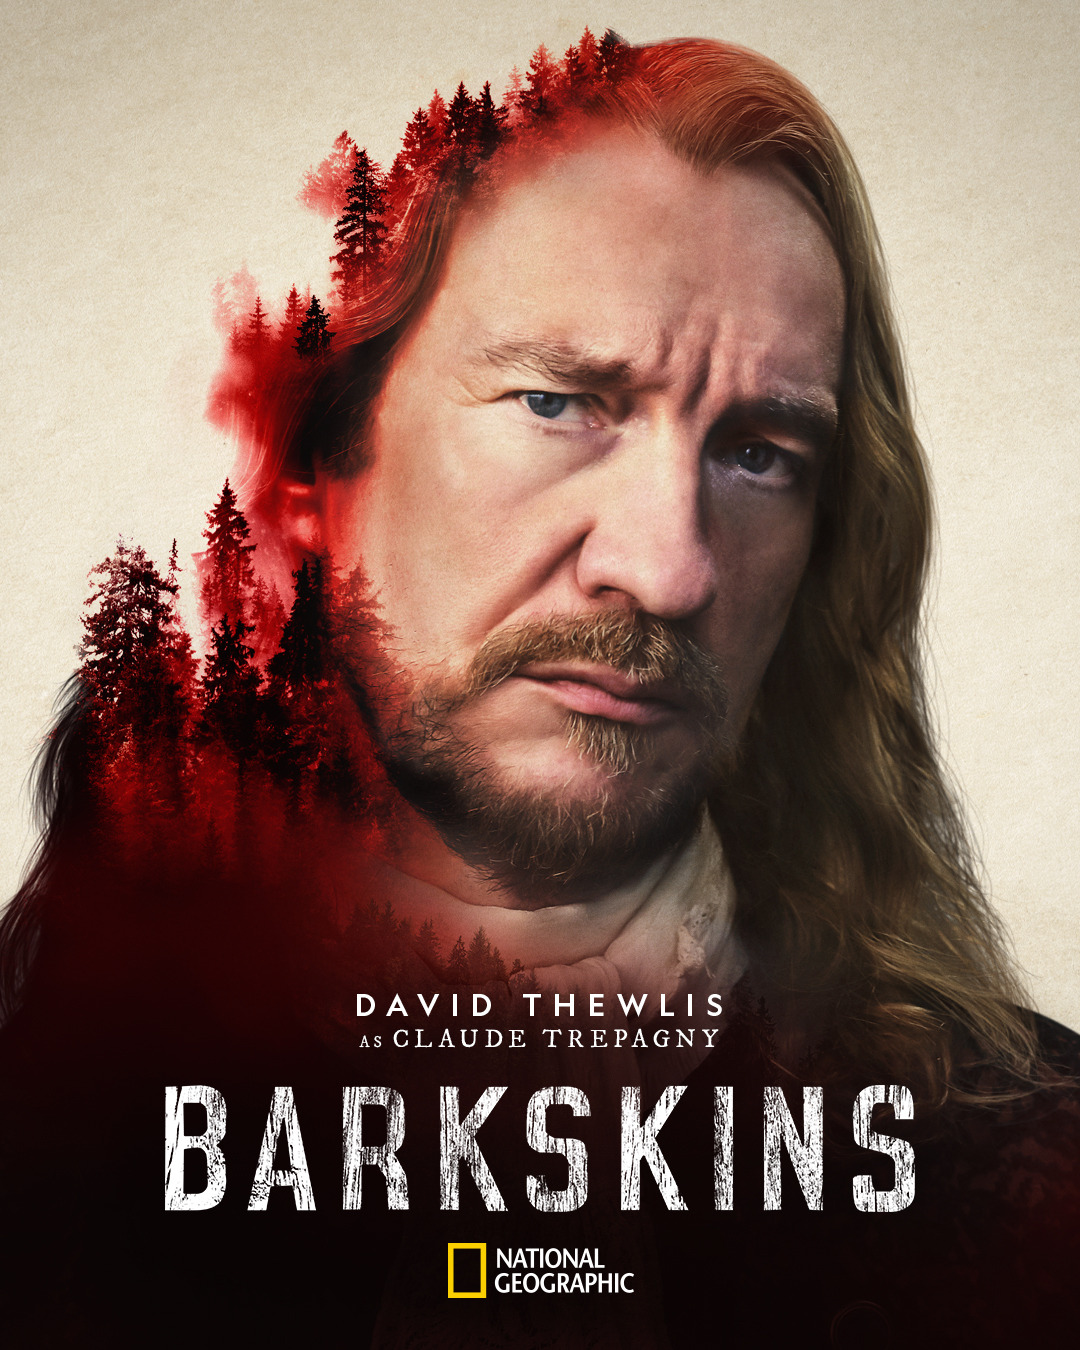 Barkskins Serie Stream Streaminganbieter Kino De Born on the 19th june, 1967, inuvik, canada filmography 1990 : barkskins serie stream